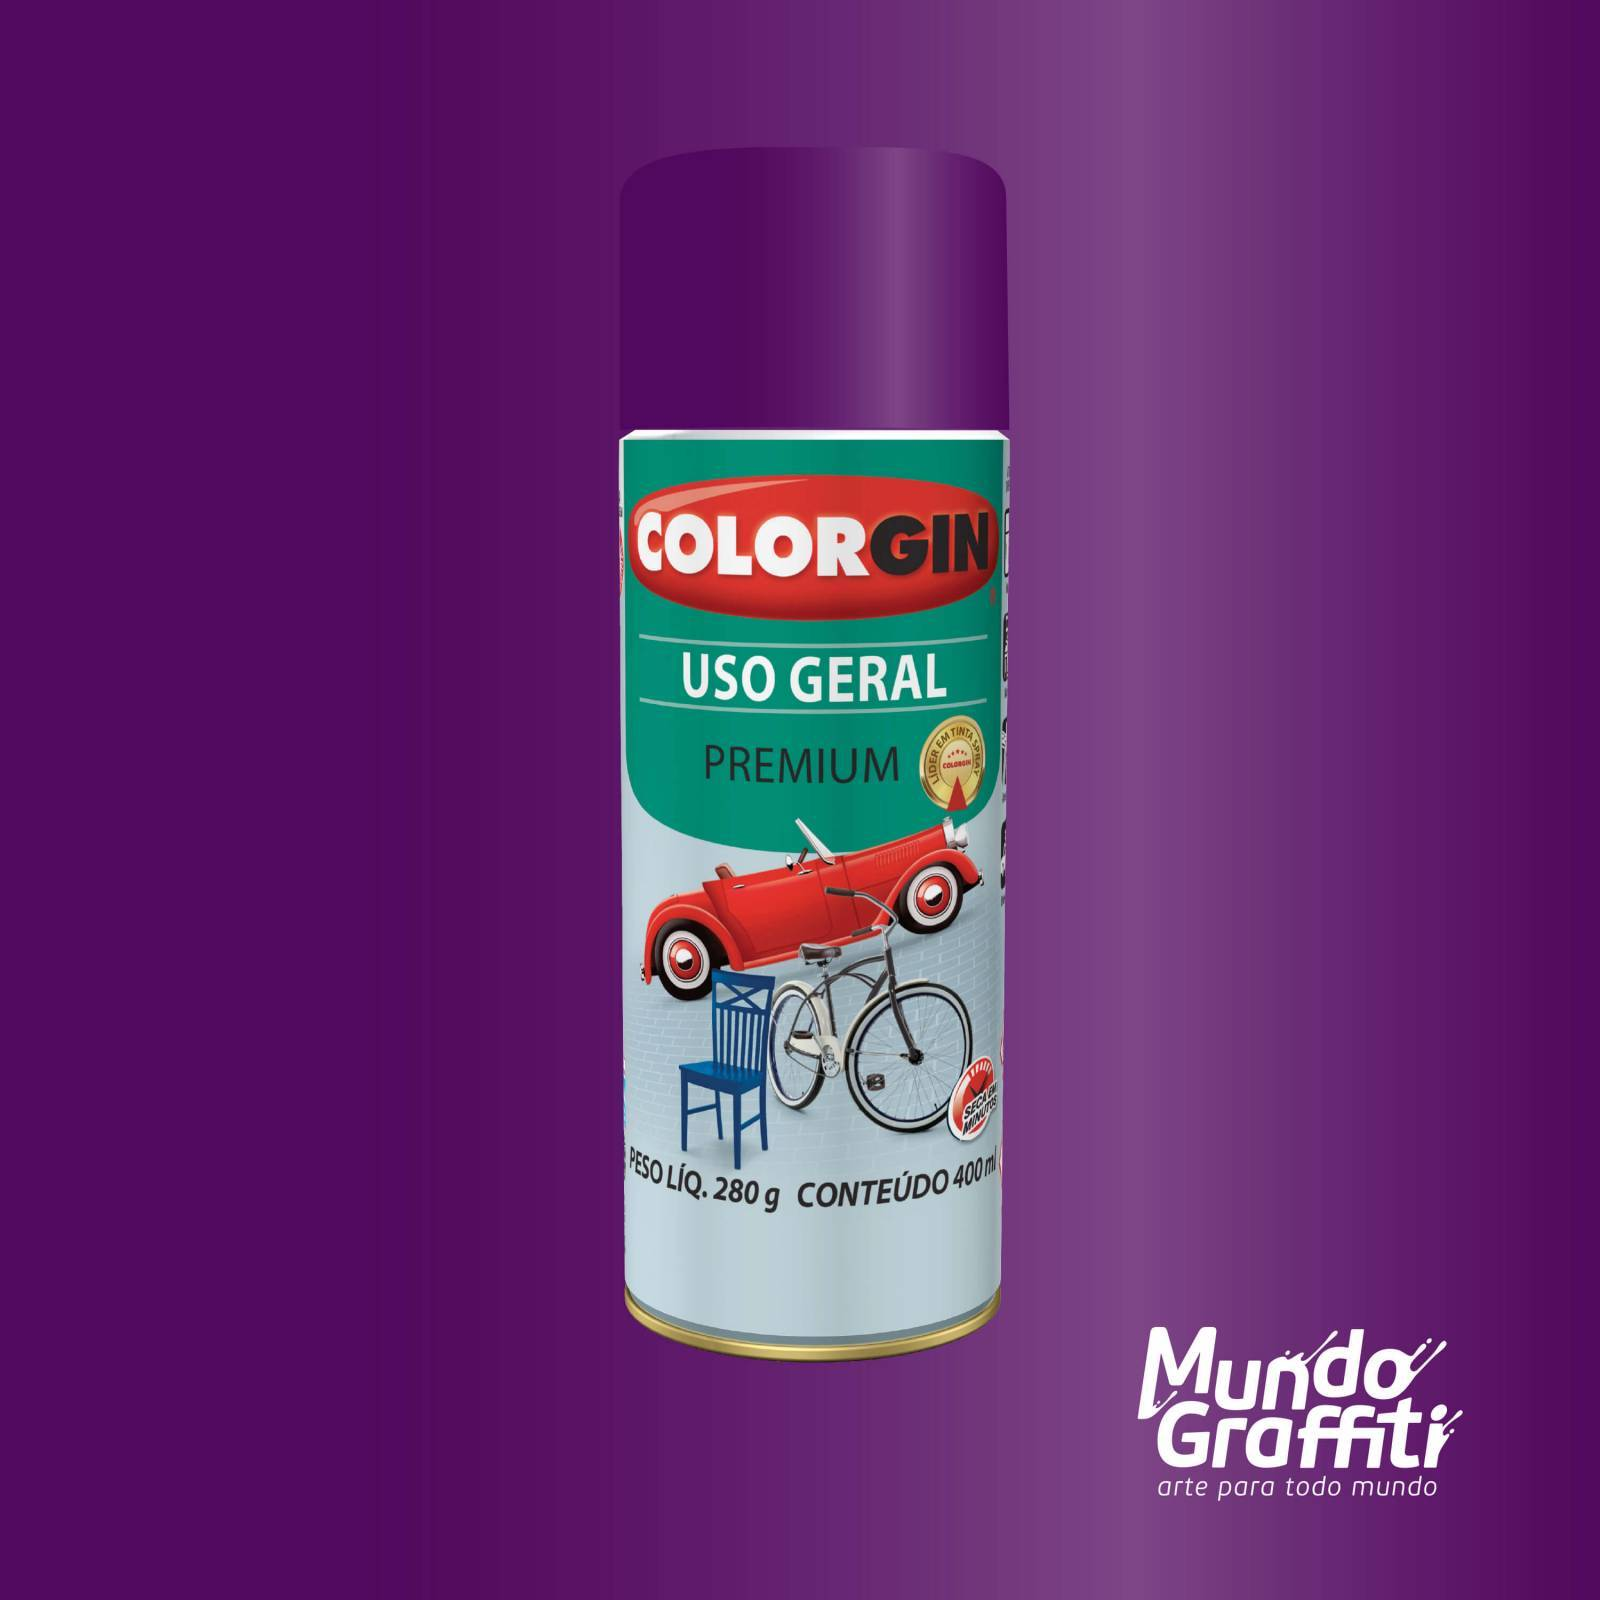 Tinta Spray Colorgin Uso Geral 57021 Violeta Imperial Metali - Mundo Graffiti